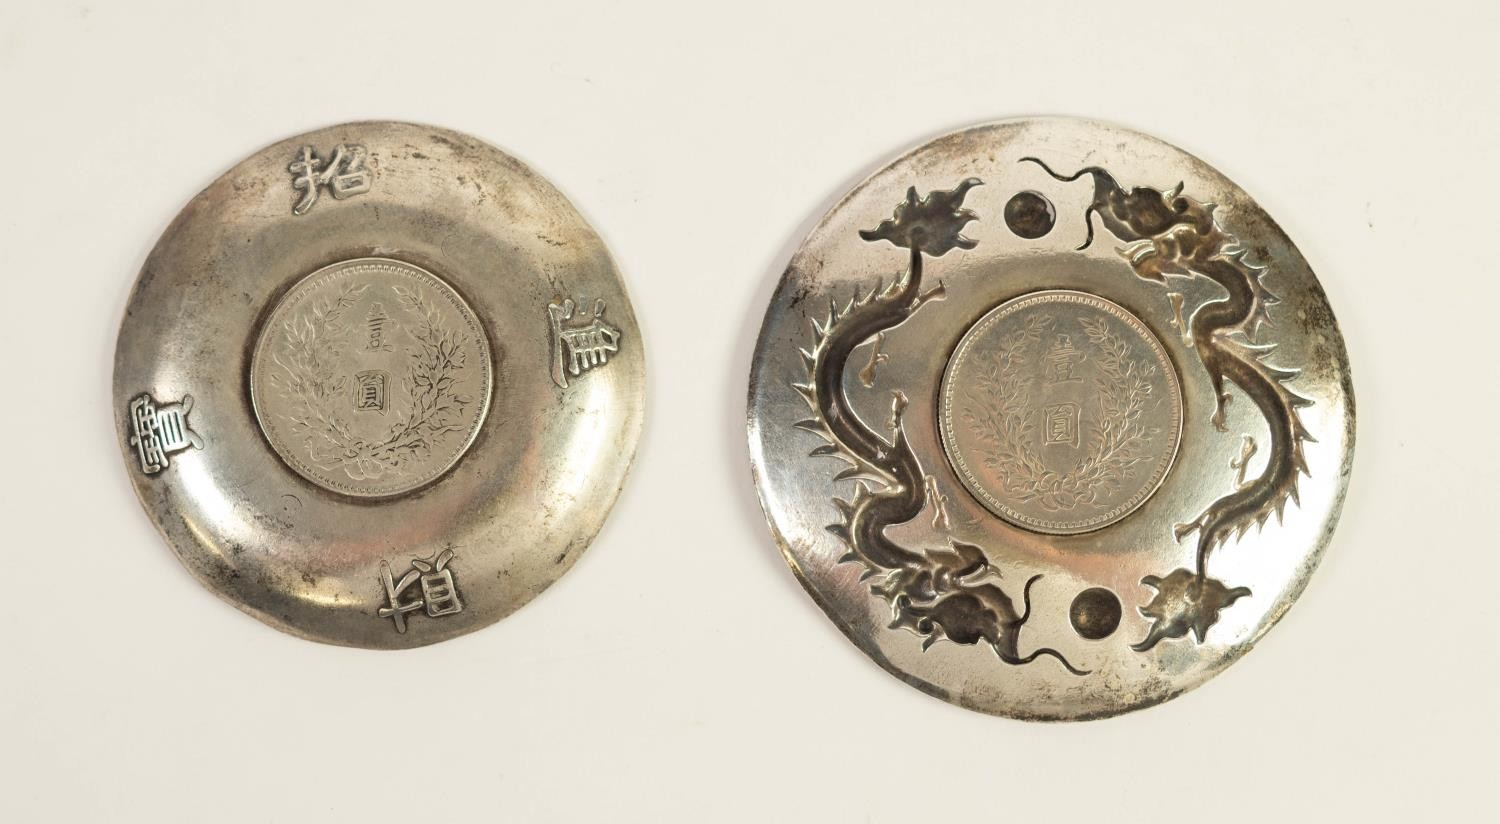 CHINESE CIRCA 1920s CAST WHITE METAL SMALL CIRCULAR DISH, INSET WITH SILVER ONE DOLLAR YUAN SHIH-KAI - Image 2 of 2